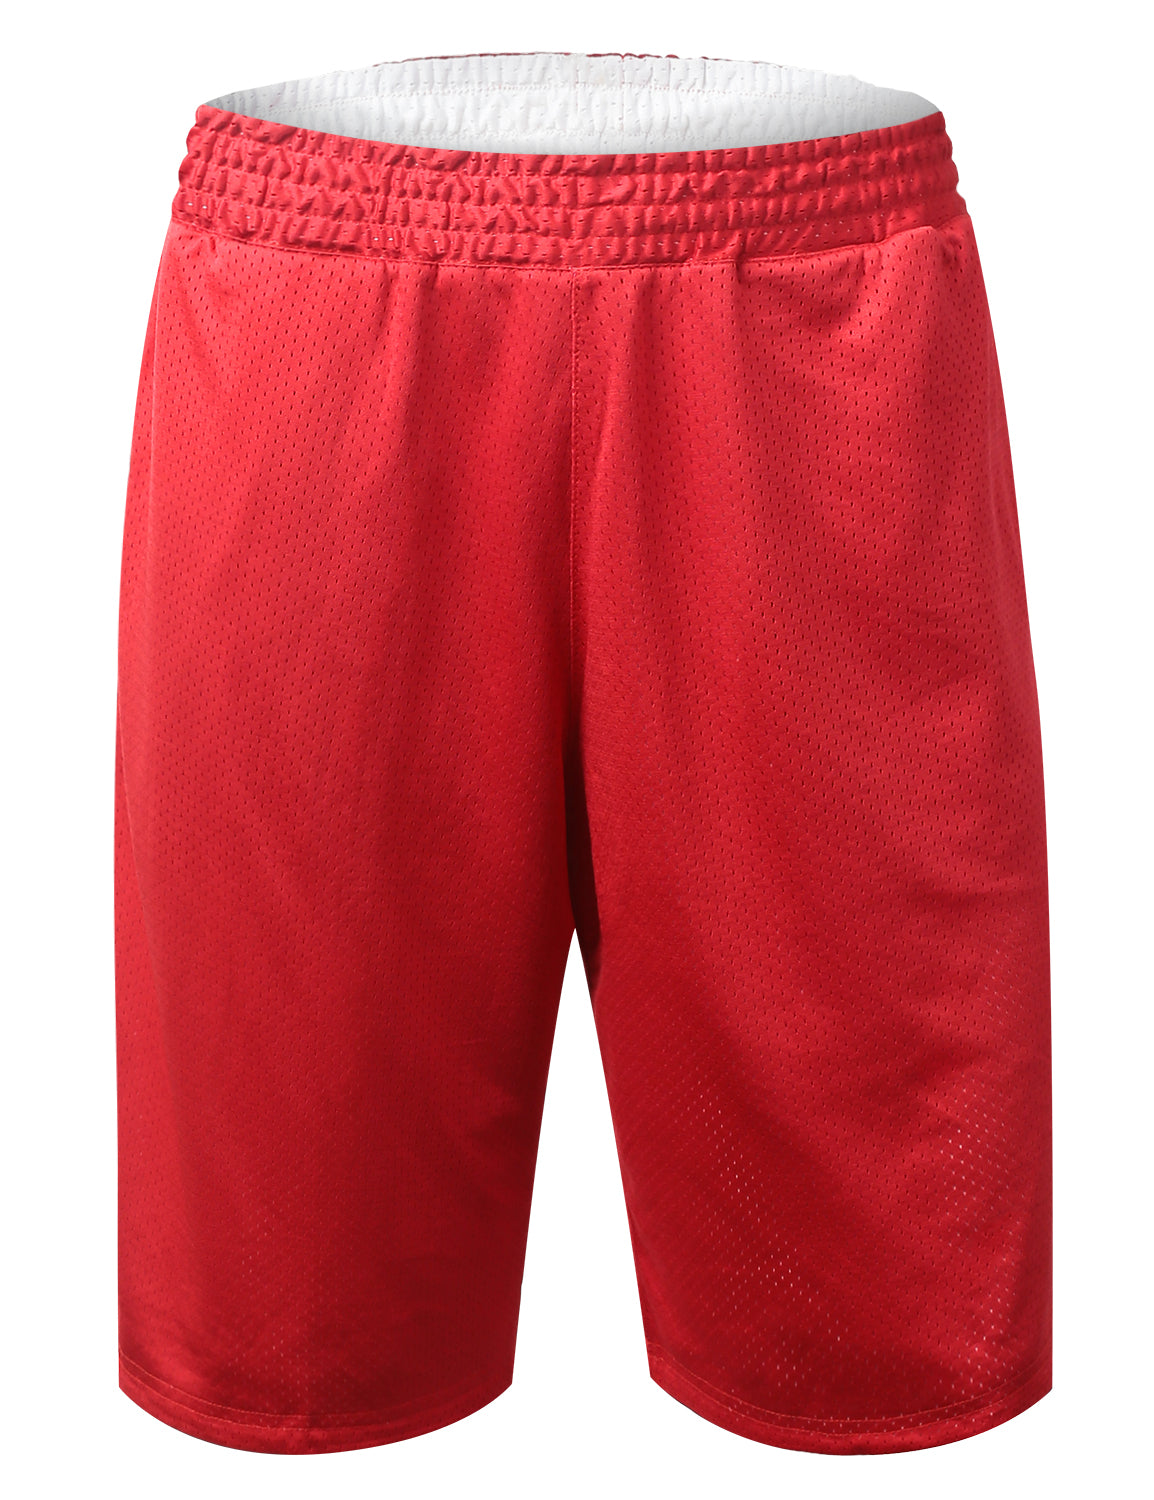 RED Reversible Mesh Athletic Basketball Shorts - URBANCREWS